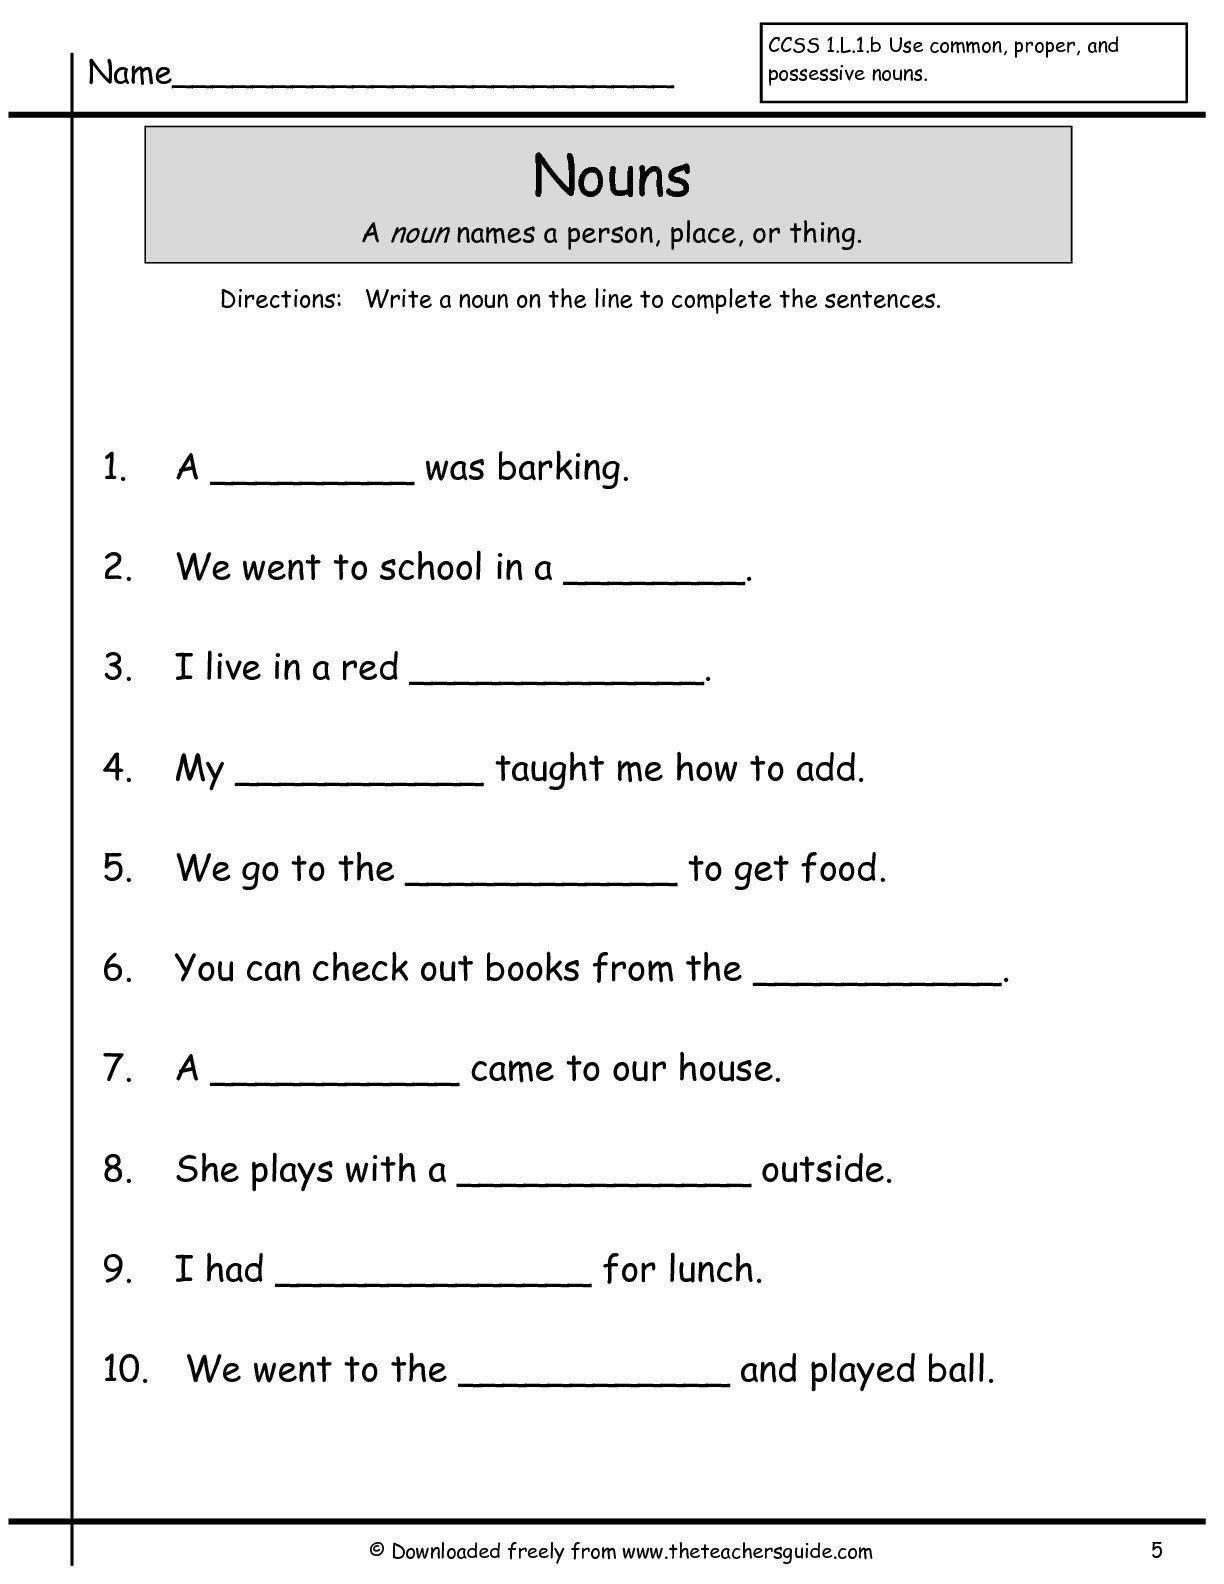 First Grade Sentence Writing Worksheets Mcgraw Hill Wonders 1st Grade Resources and Printouts for